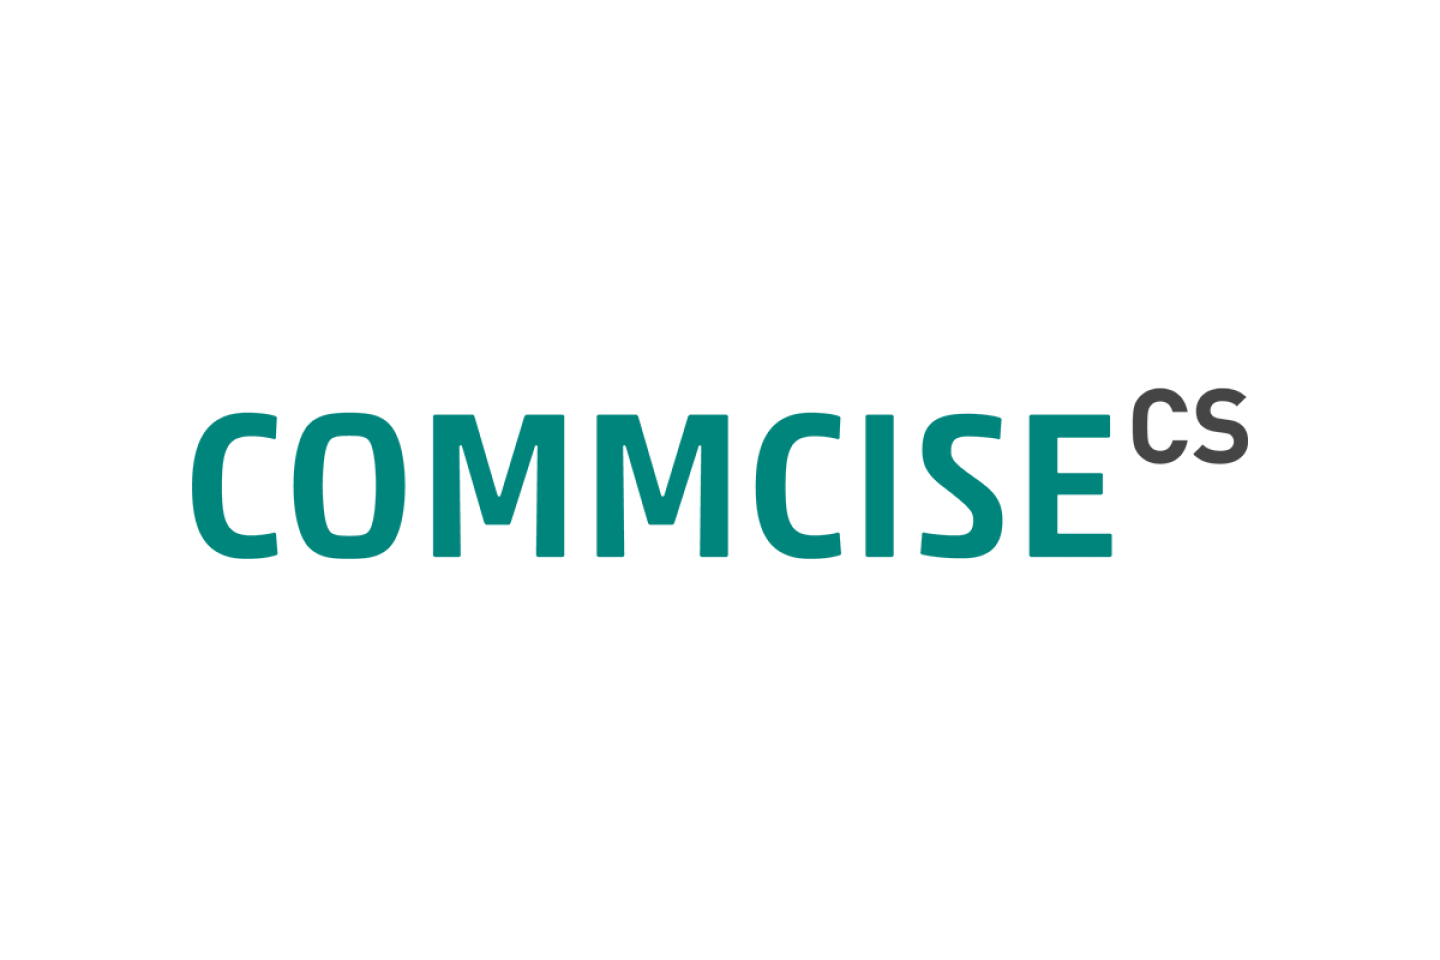 Commcise CS